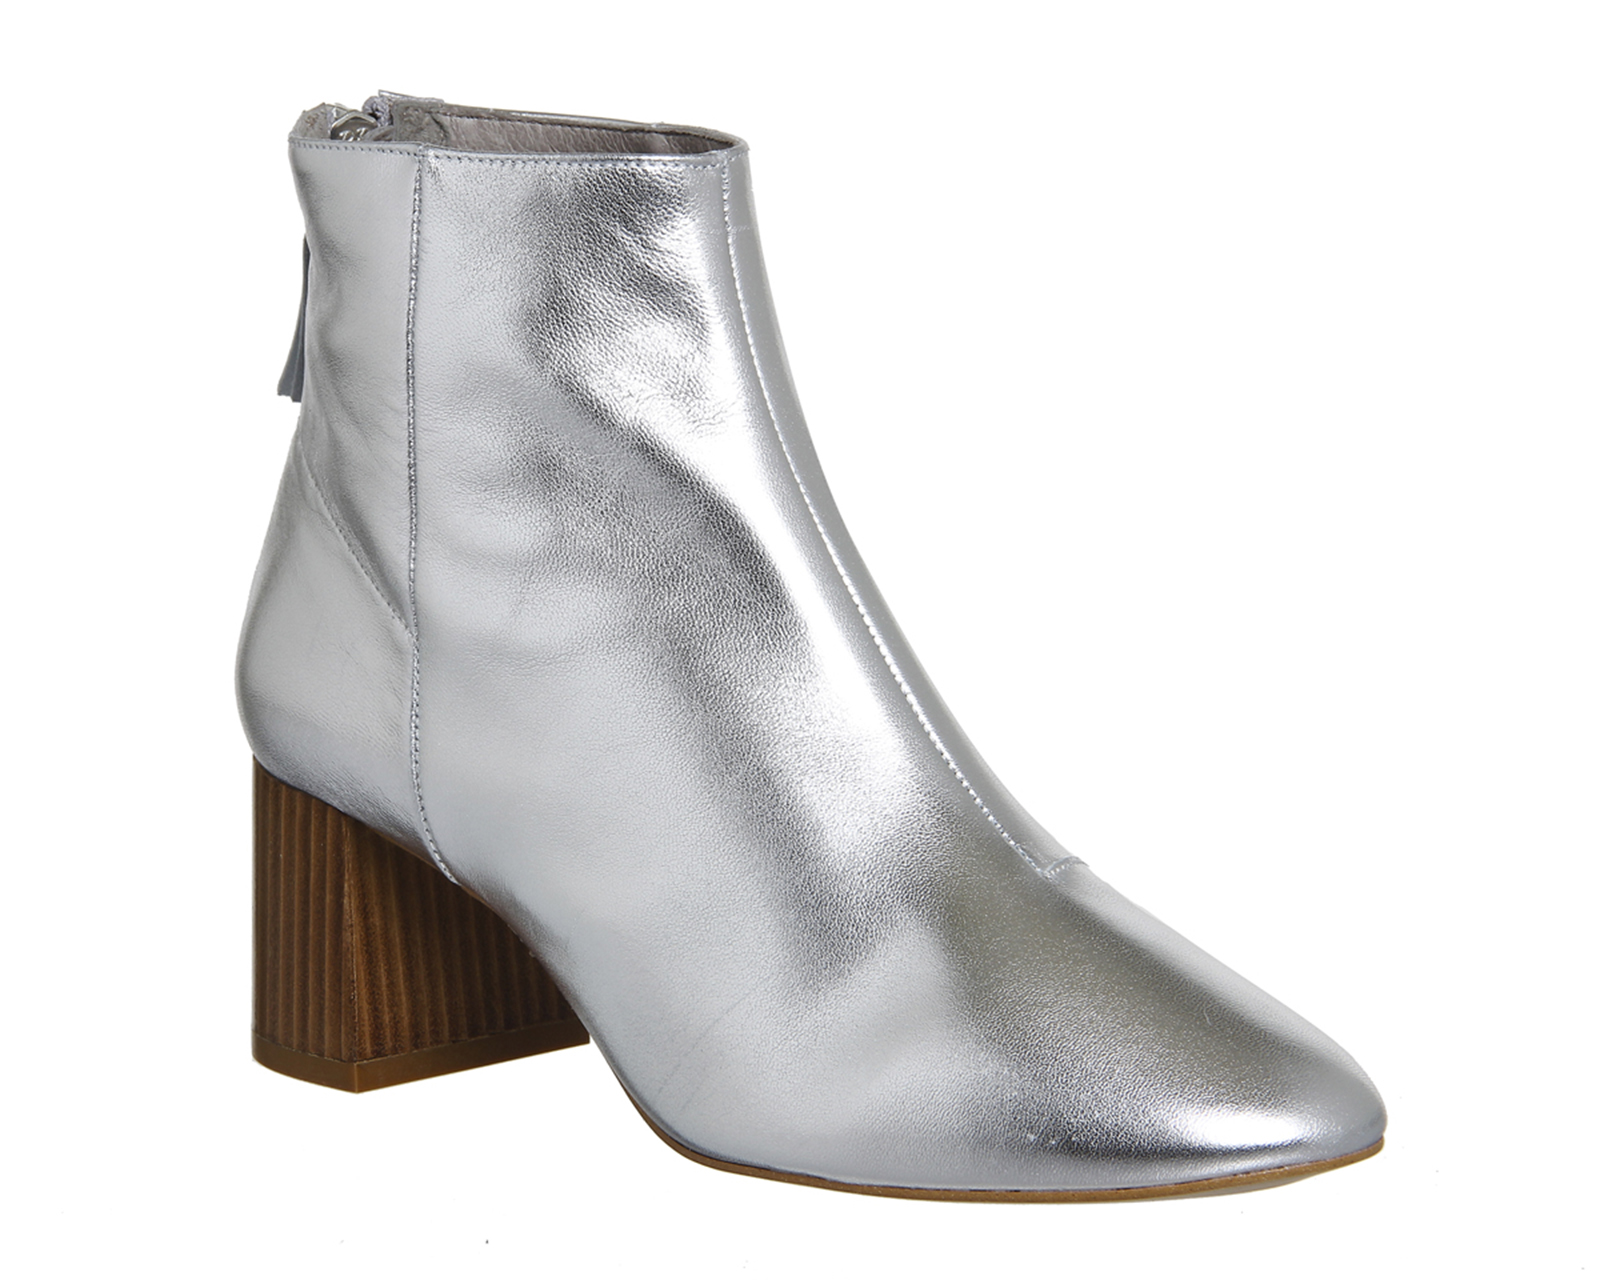 Sentinel Womens Office Silver Leather Zip Ankle Boots Size UK 8  Ex-Display 6d0d841d421